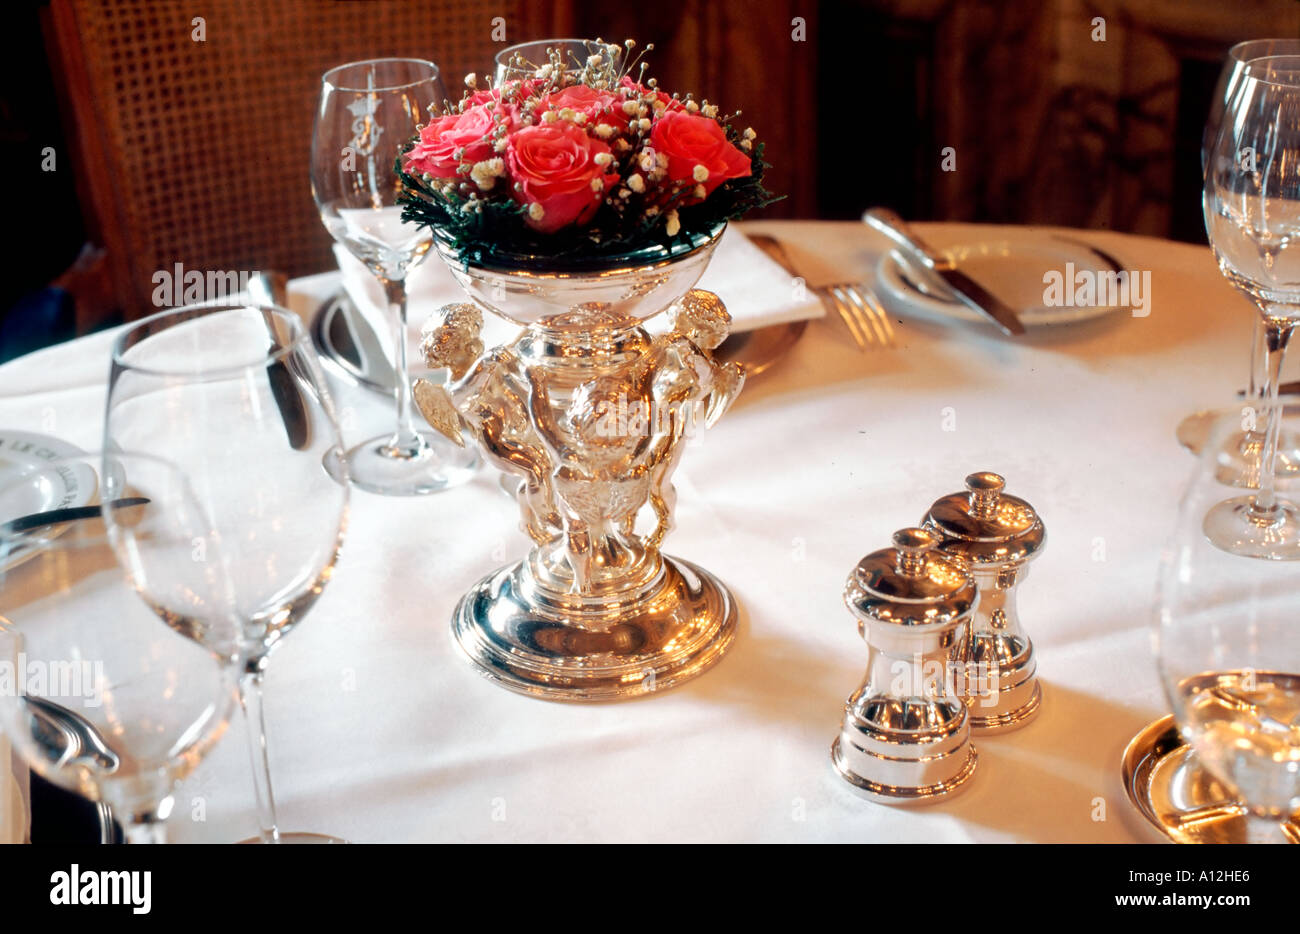 paris france french haute cuisine restaurant detail table setting stock photo royalty free. Black Bedroom Furniture Sets. Home Design Ideas